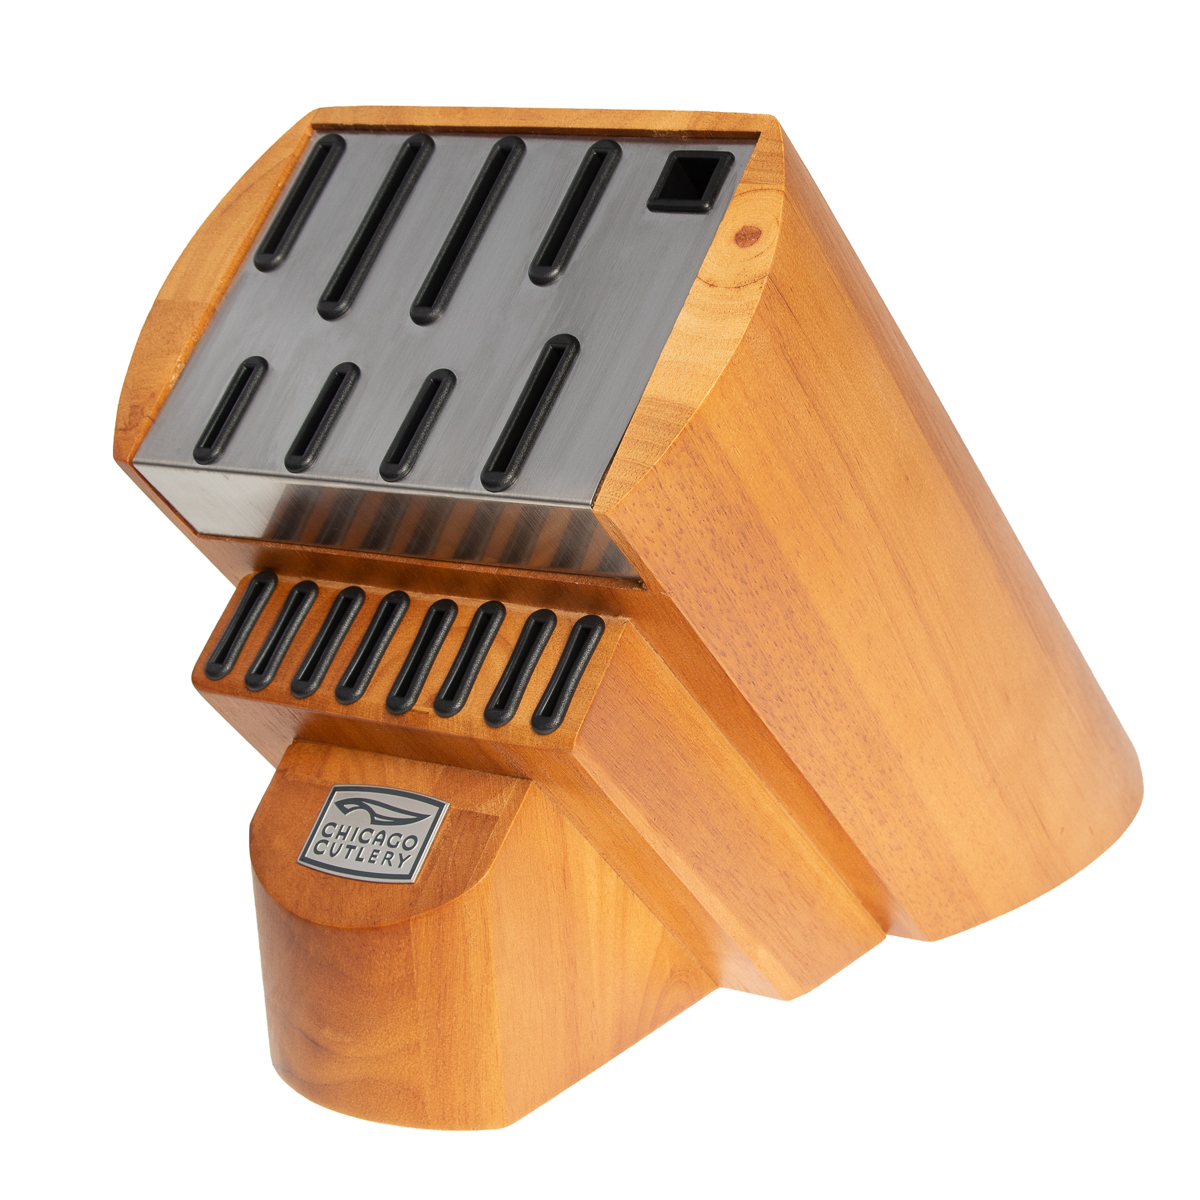 Chicago Cutlery Knife Block Storage For Kitchen Knife Set Wood Base and Stainless Steel Strike Plate